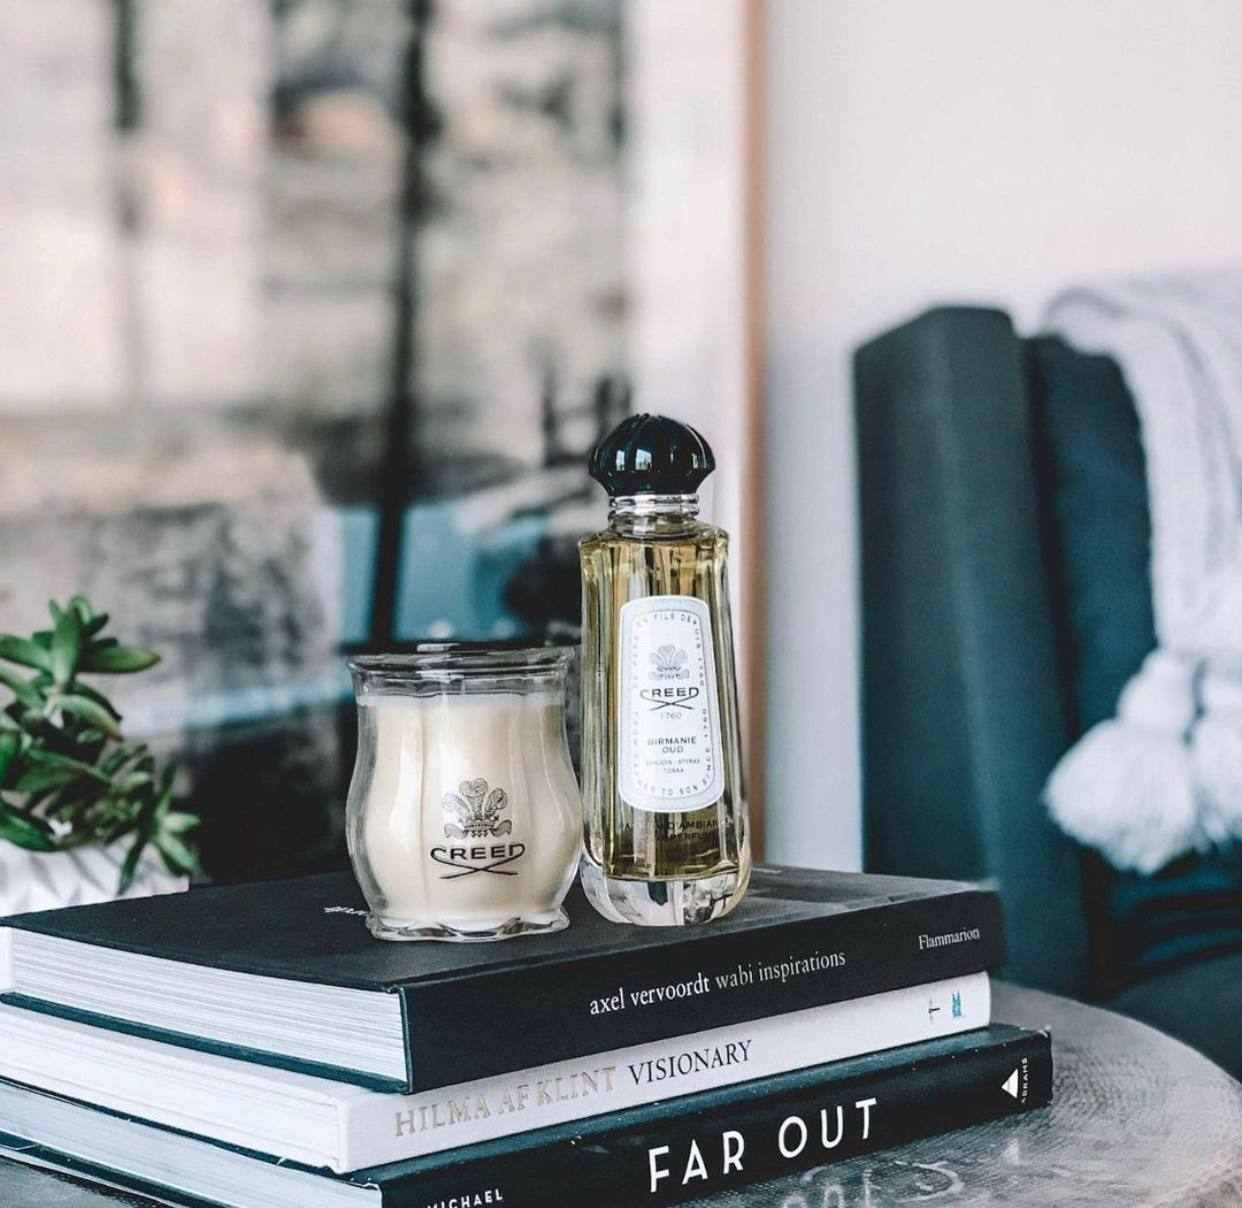 Creed Home Fragrance